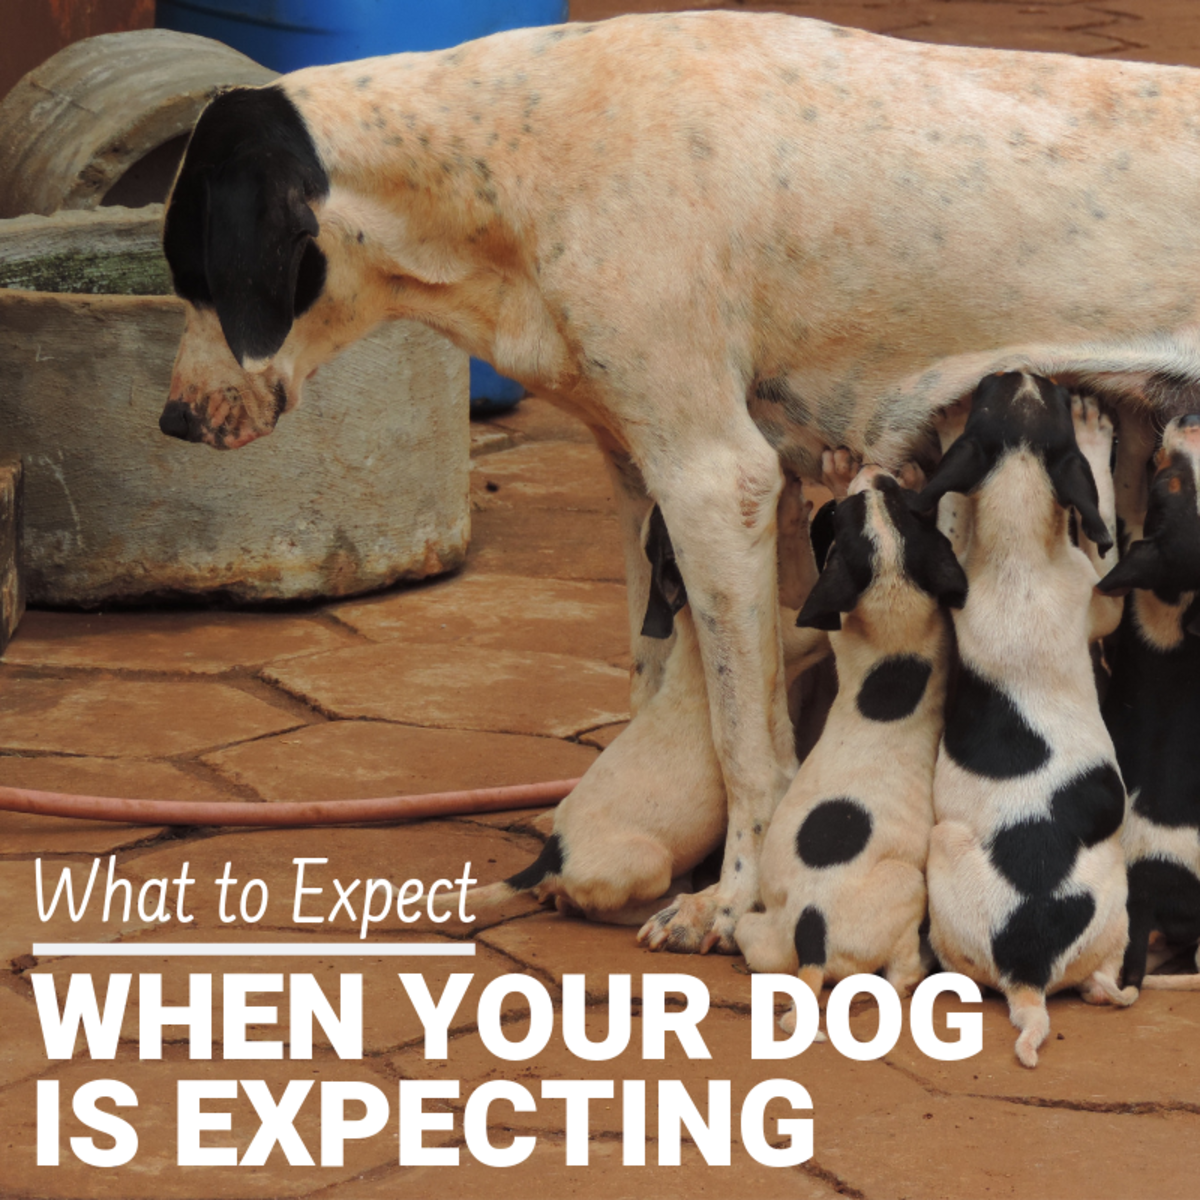 What to Expect When Your Pregnant Dog Is Expecting Puppies